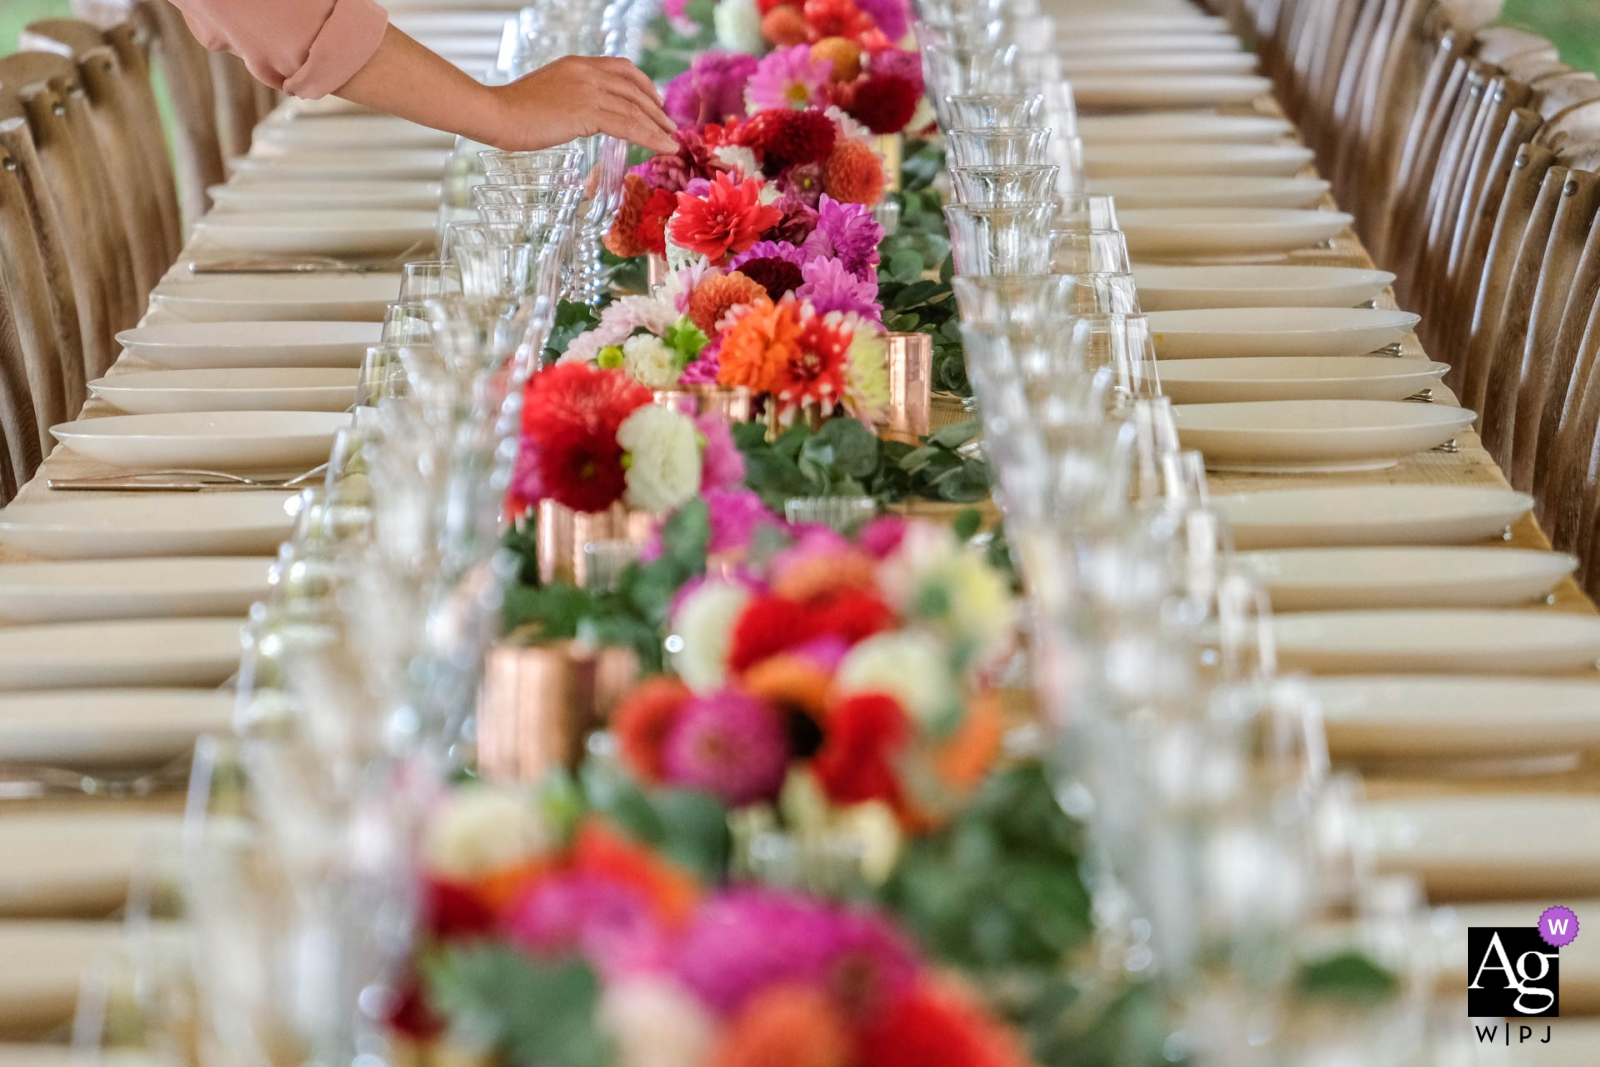 wedding table setting with flowers down the center